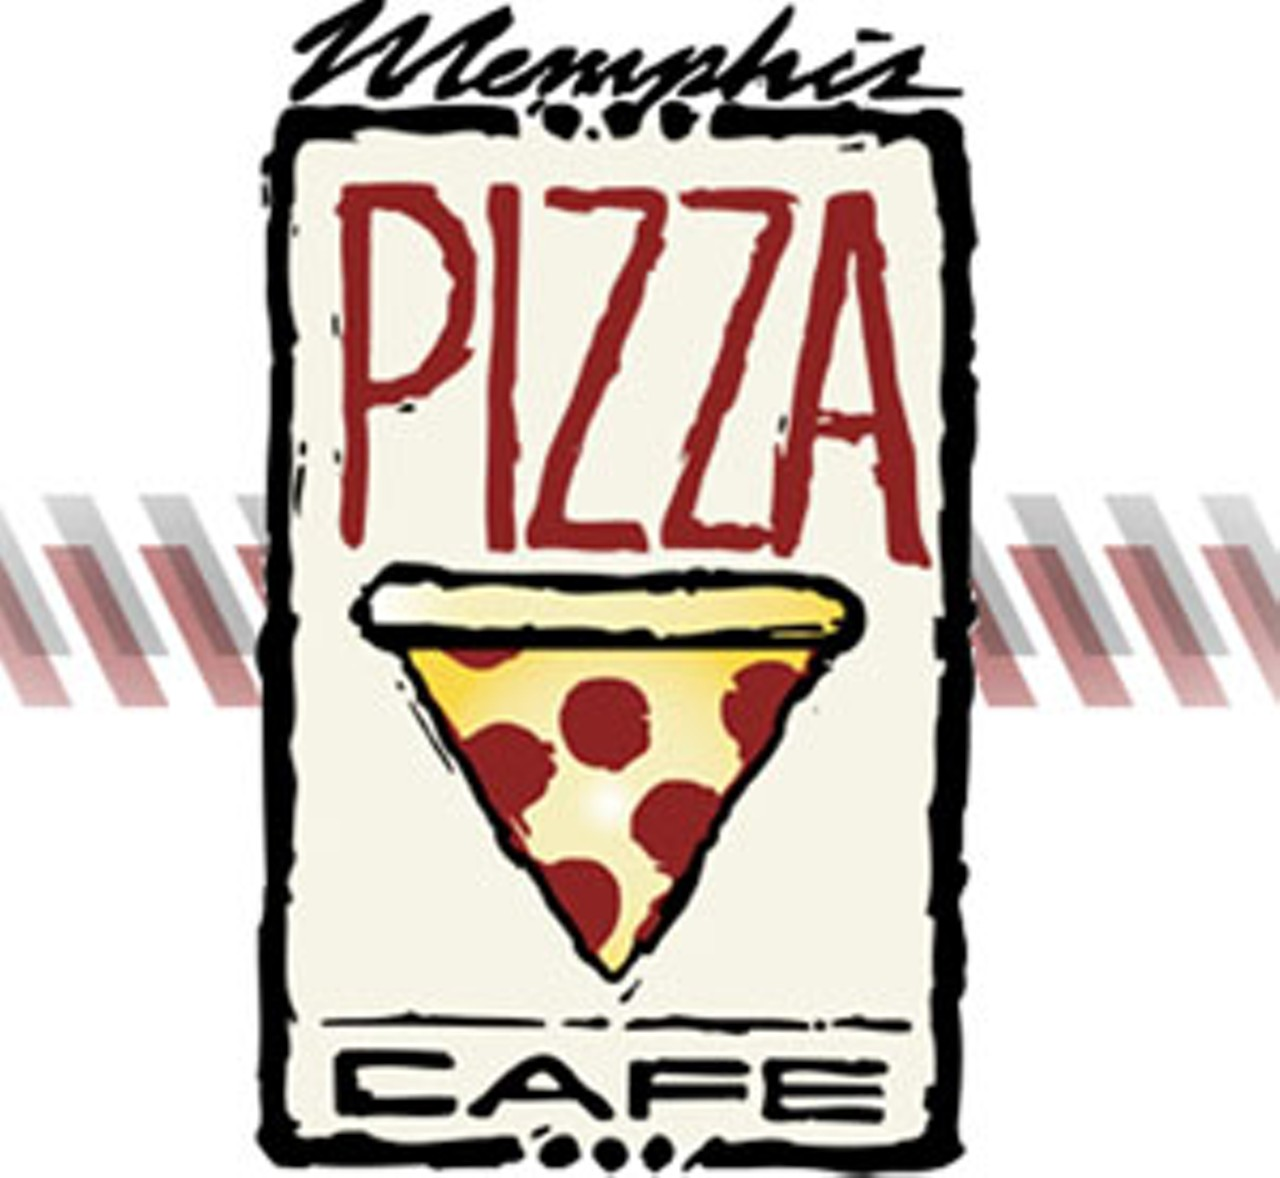 Permalink to Memphis Pizza Cafe Menu